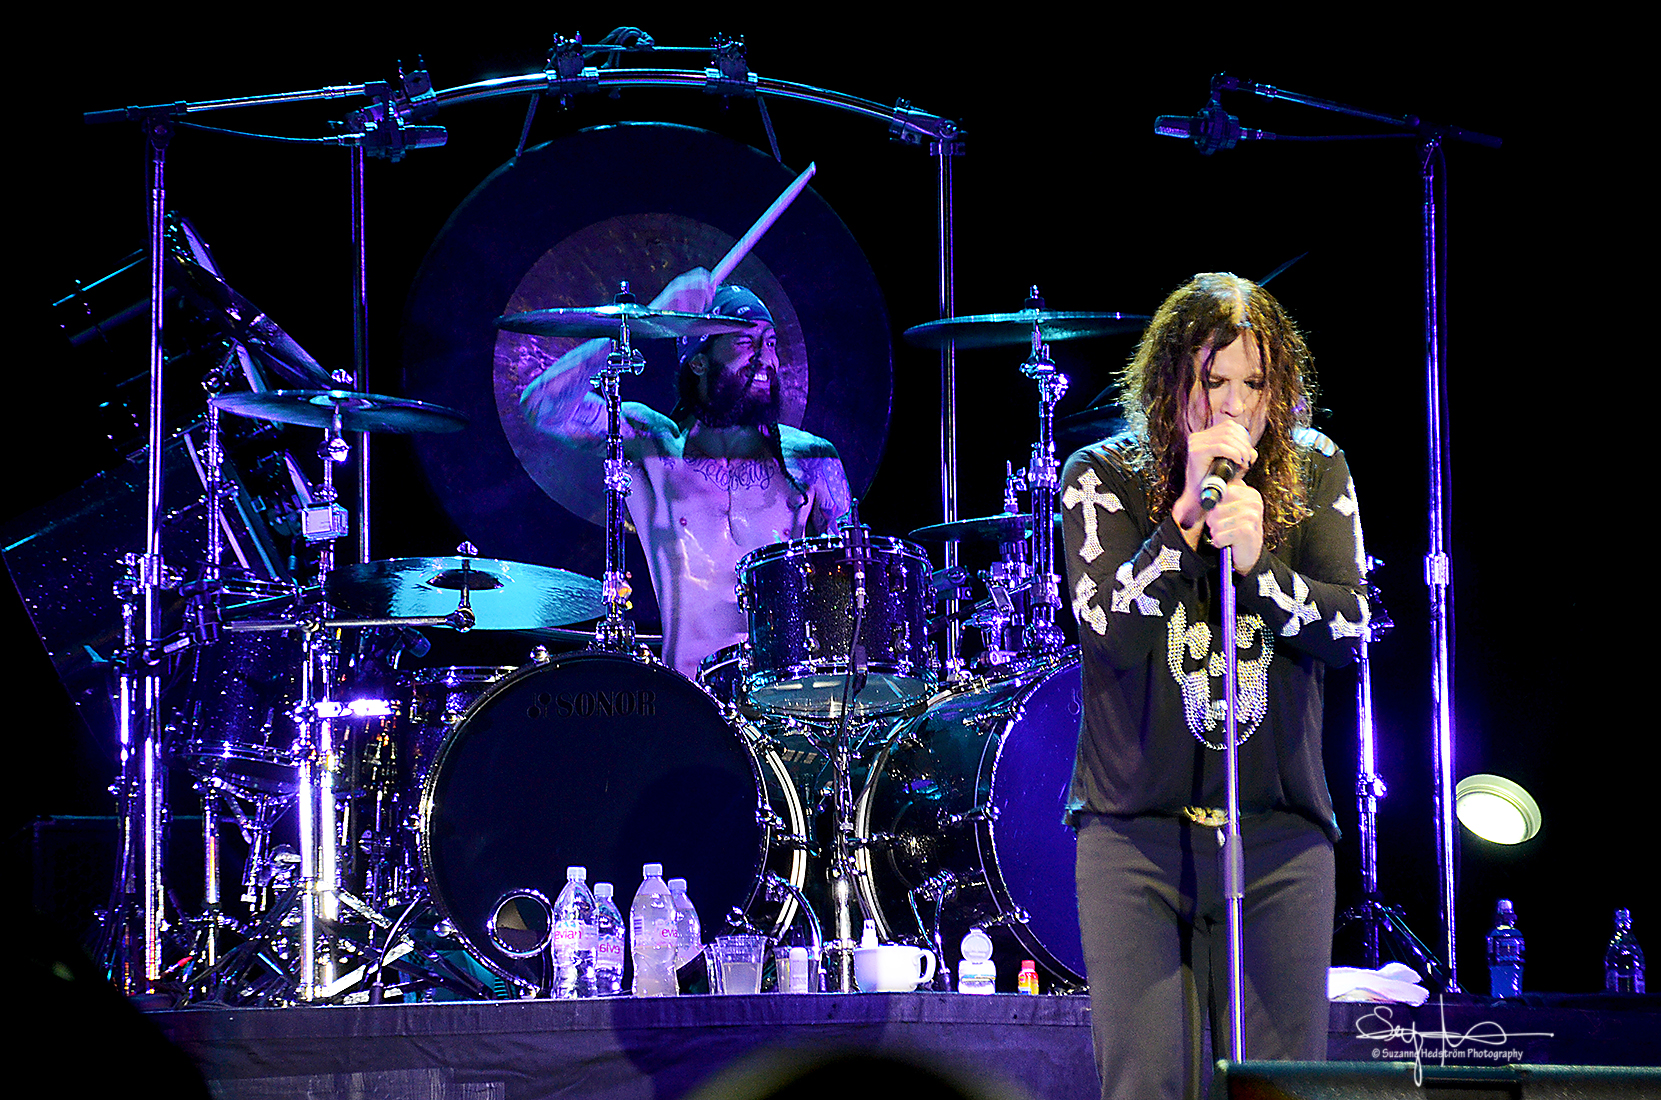 Ozzy Osborne and the drummer